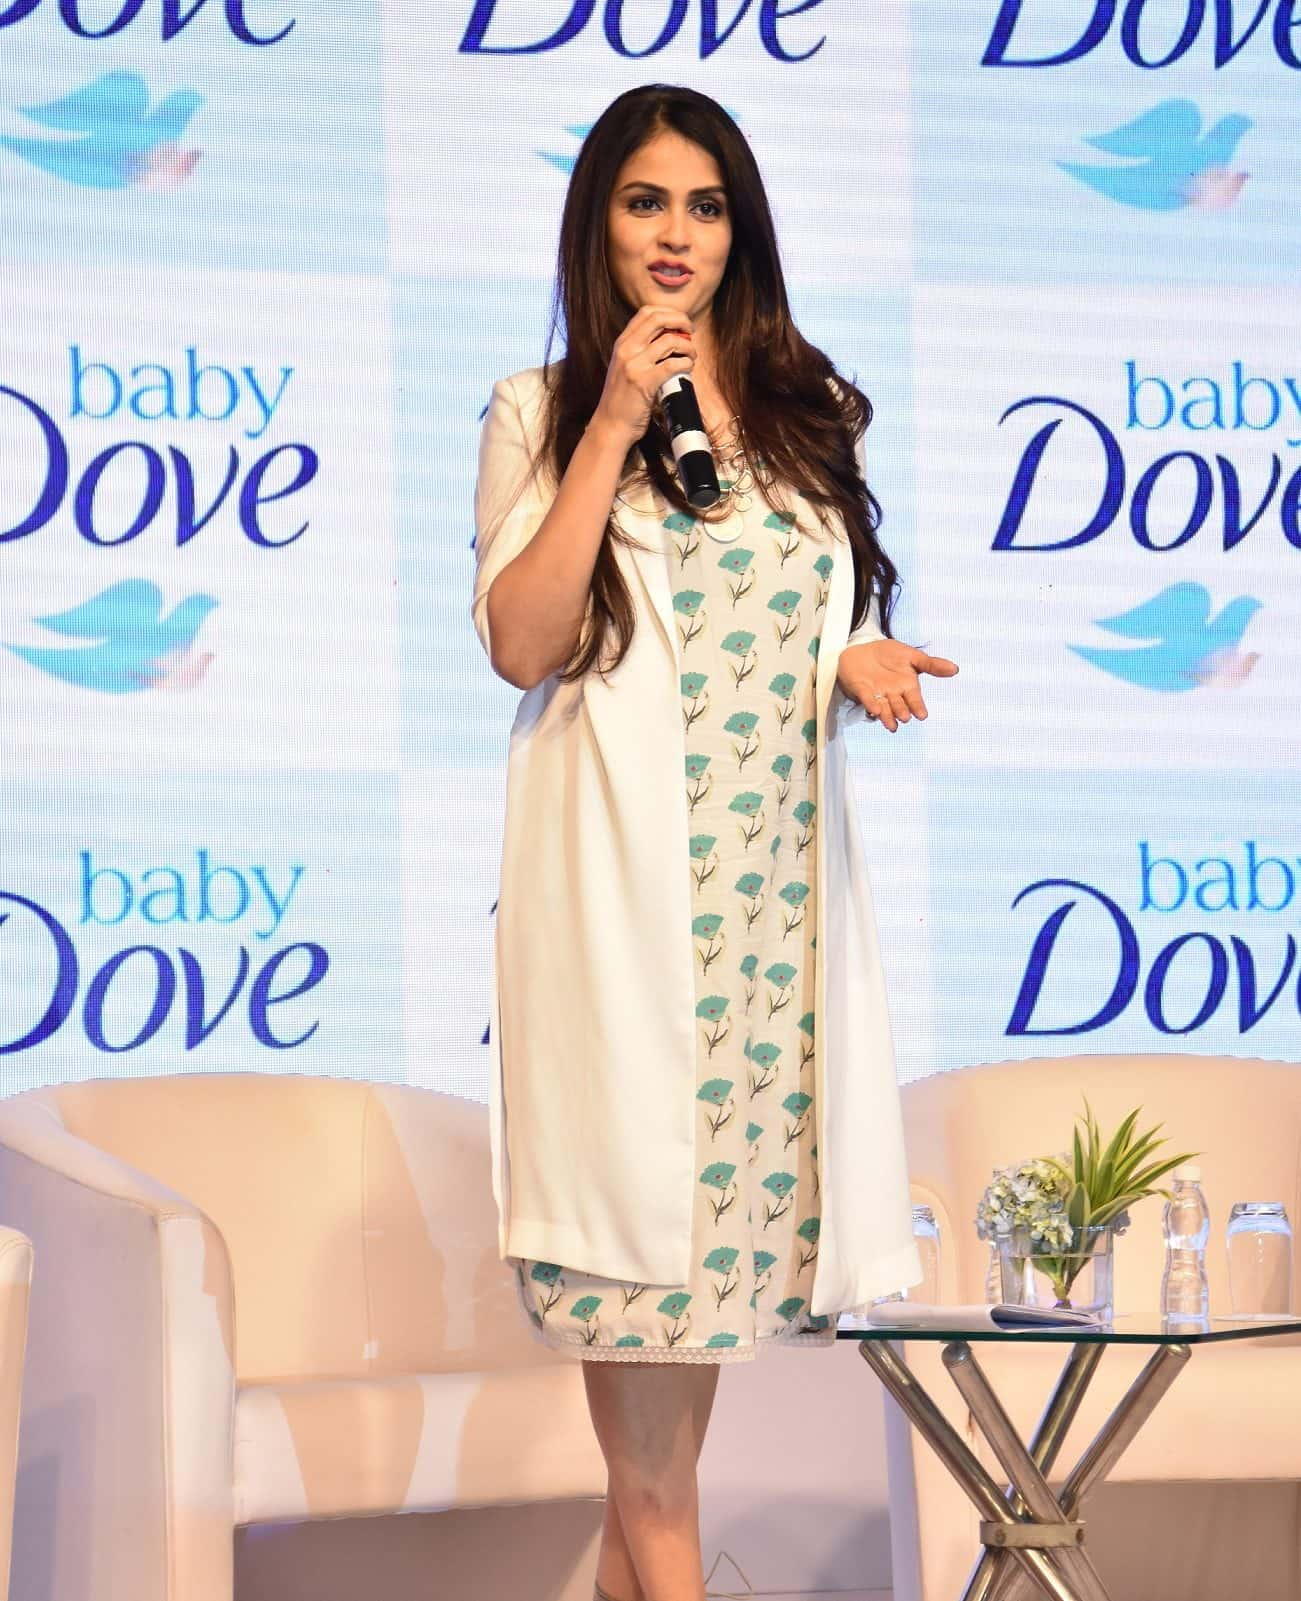 genelia-deshmukh-at-the-launch-of-baby-dove